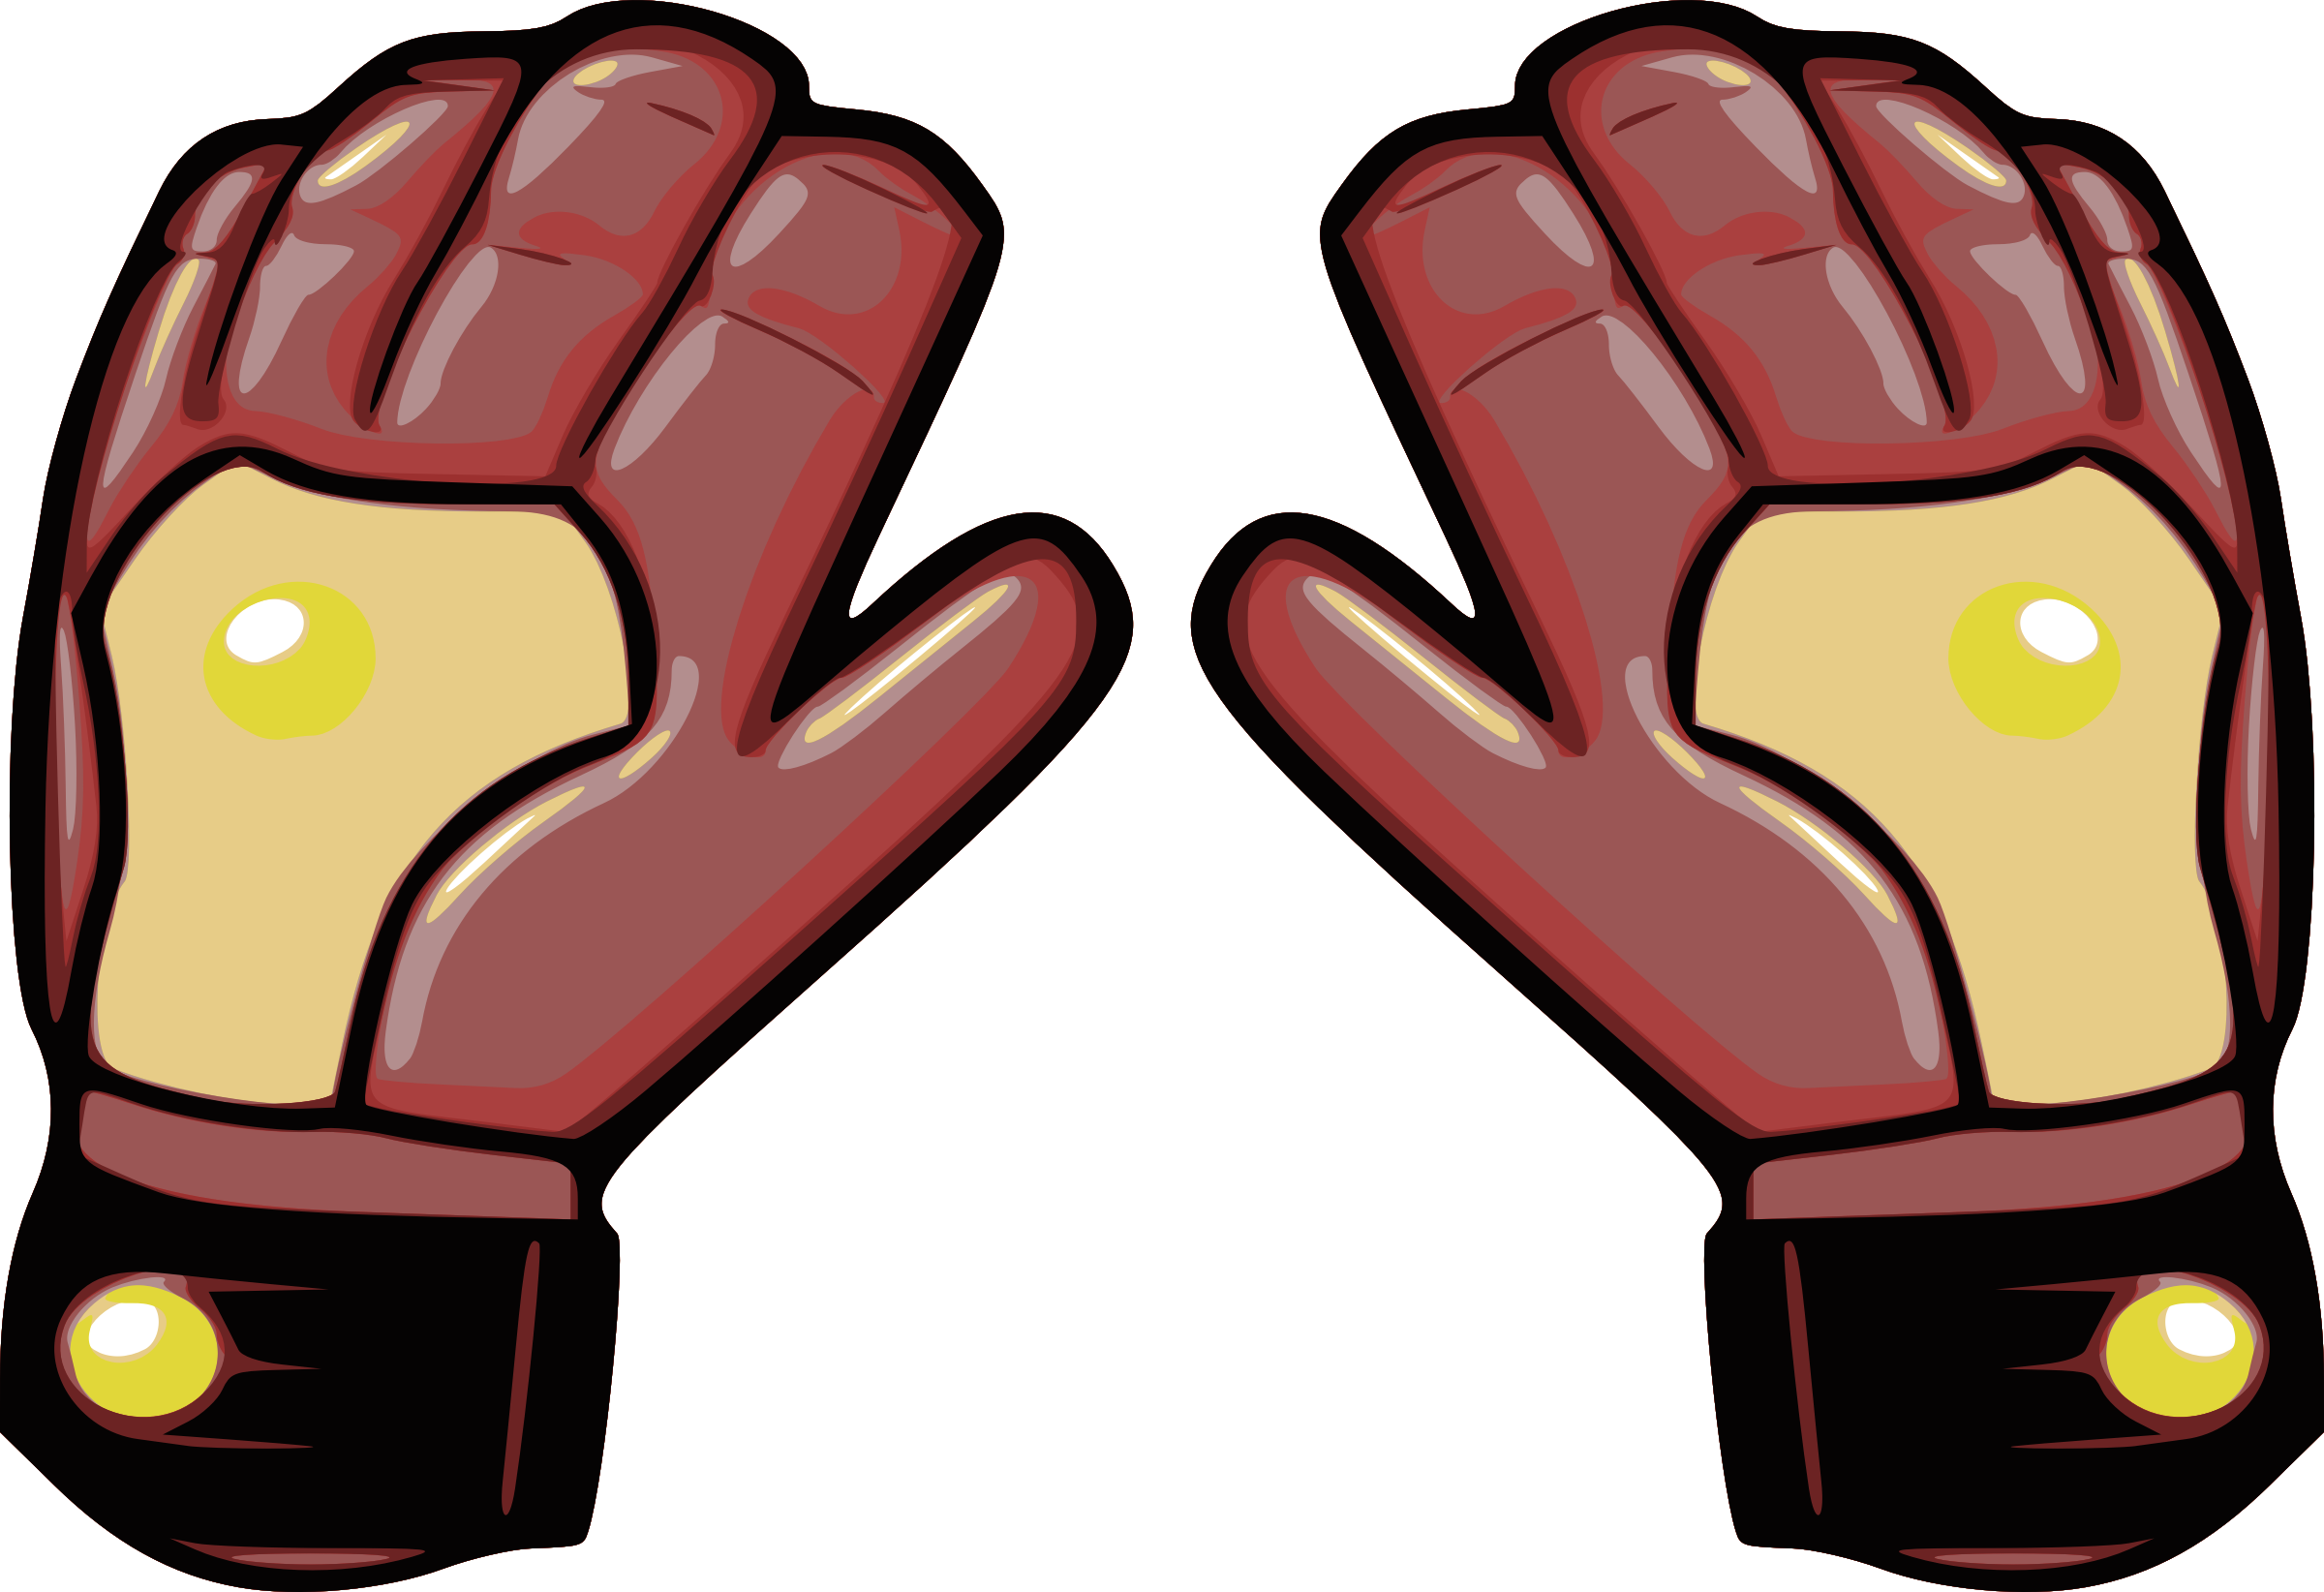 Big image png. Gloves clipart png royalty free library